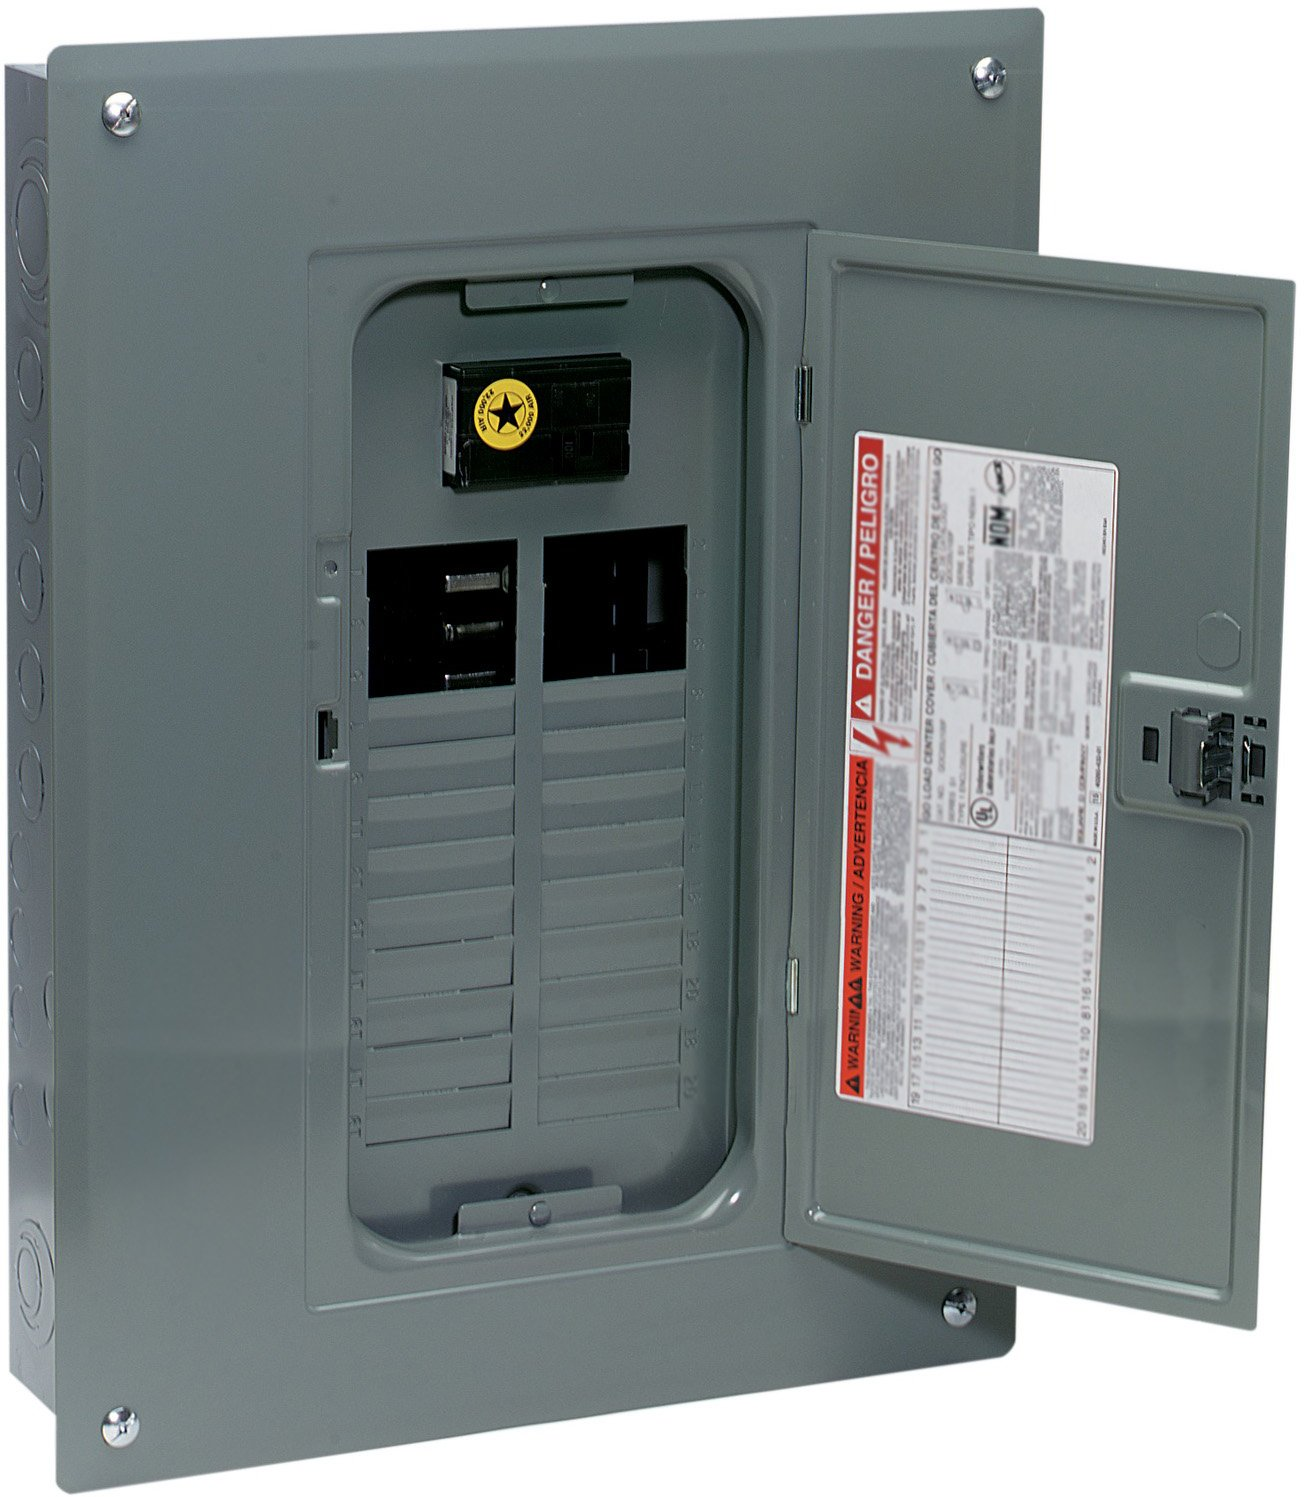 Square D By Schneider Electric Qo Plug On Neutral 100 Amp Main Breaker Box Wiring Diagram 24 Space Circuit Indoor Load Center With Cover